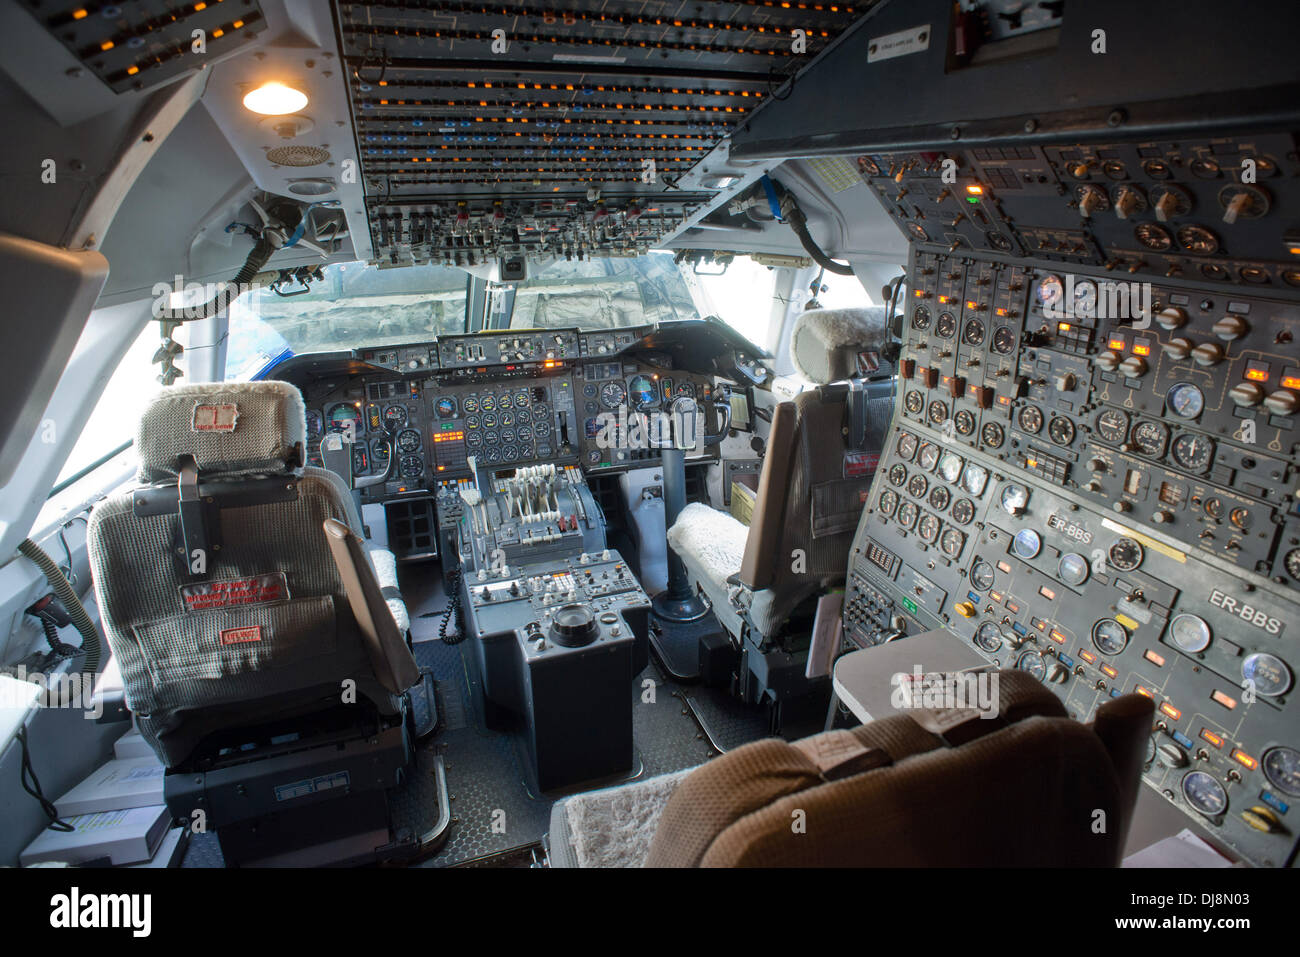 Schoenefeld, Germany  13th Nov, 2013  View of the cockpit of